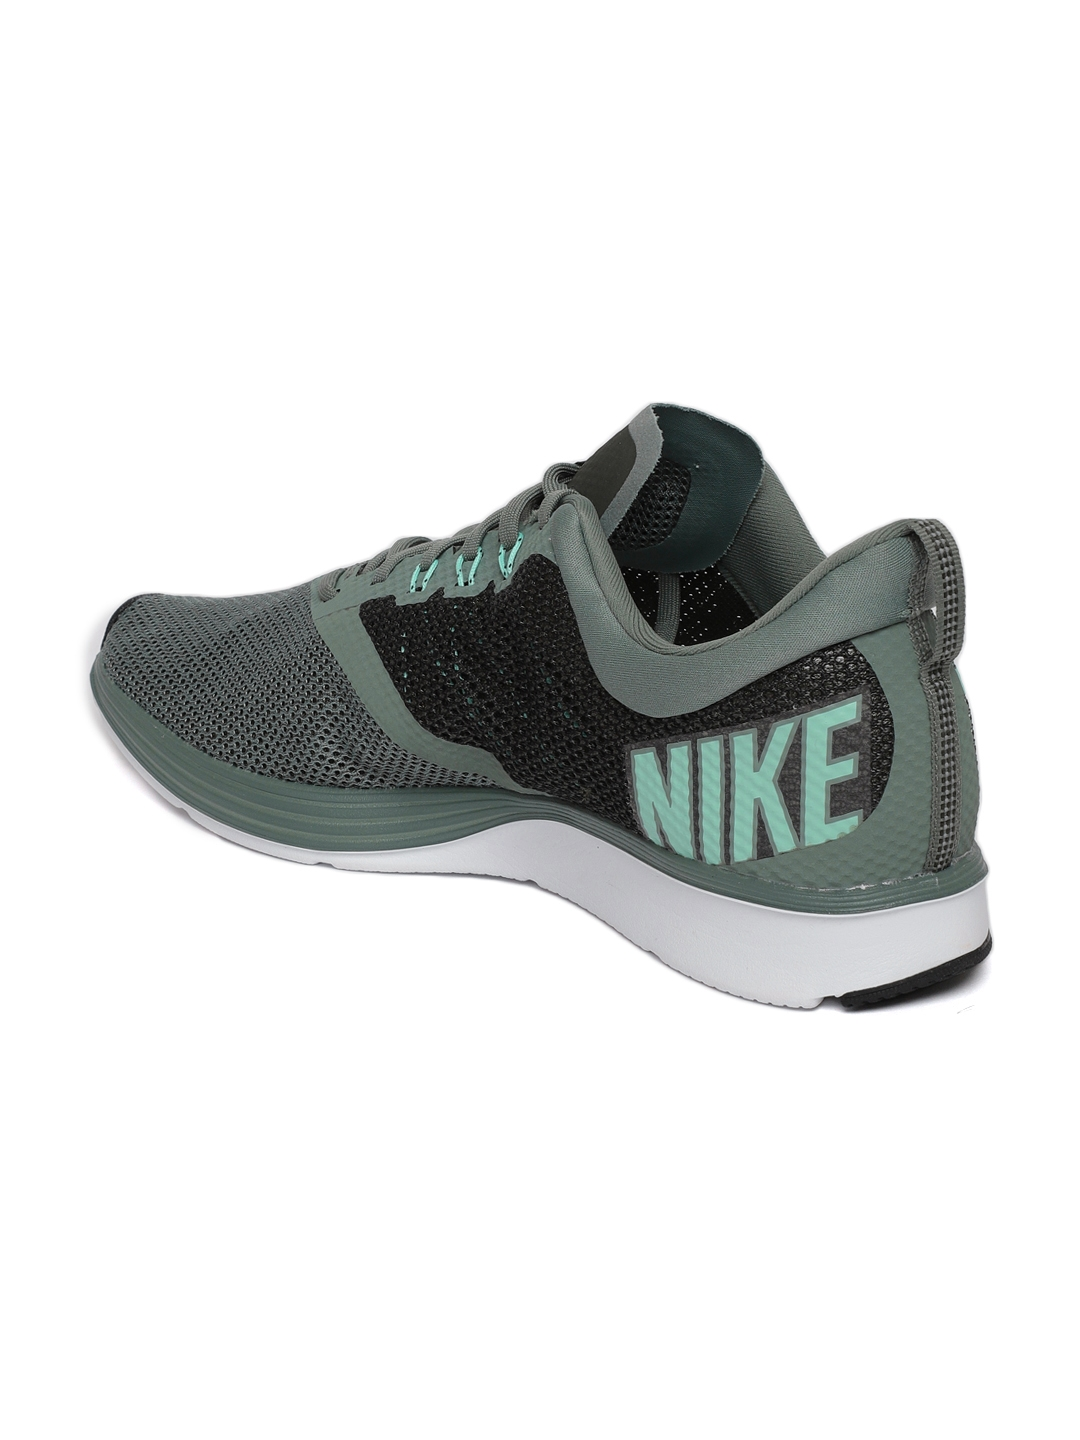 415fc30ceaf8f Buy Nike Men Green Zoom Strike Running Shoes - Sports Shoes for Men ...